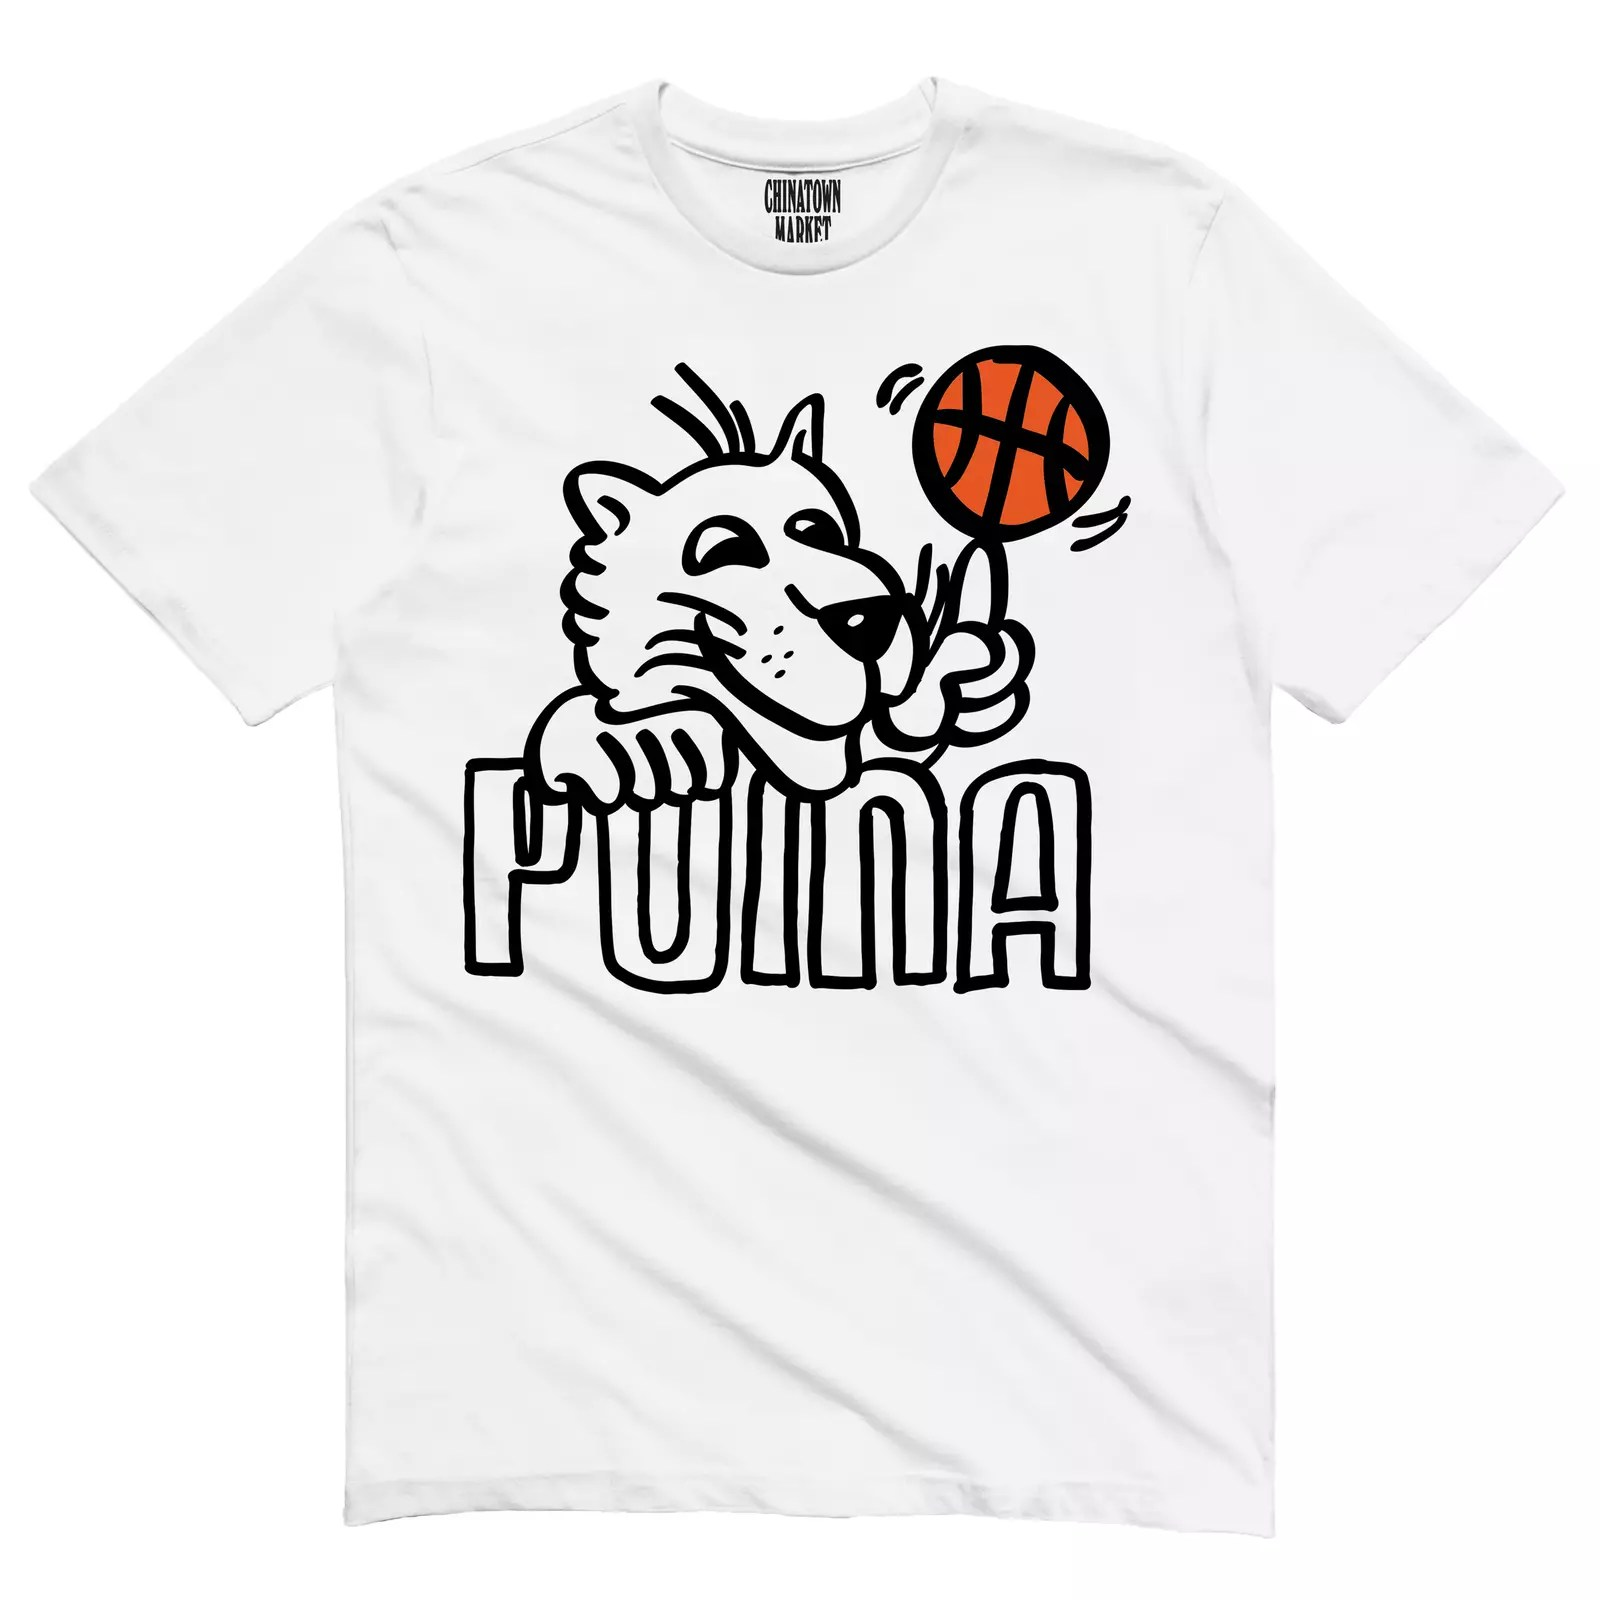 Chinatown Market and Puma Reveal Collab for NBA Draft